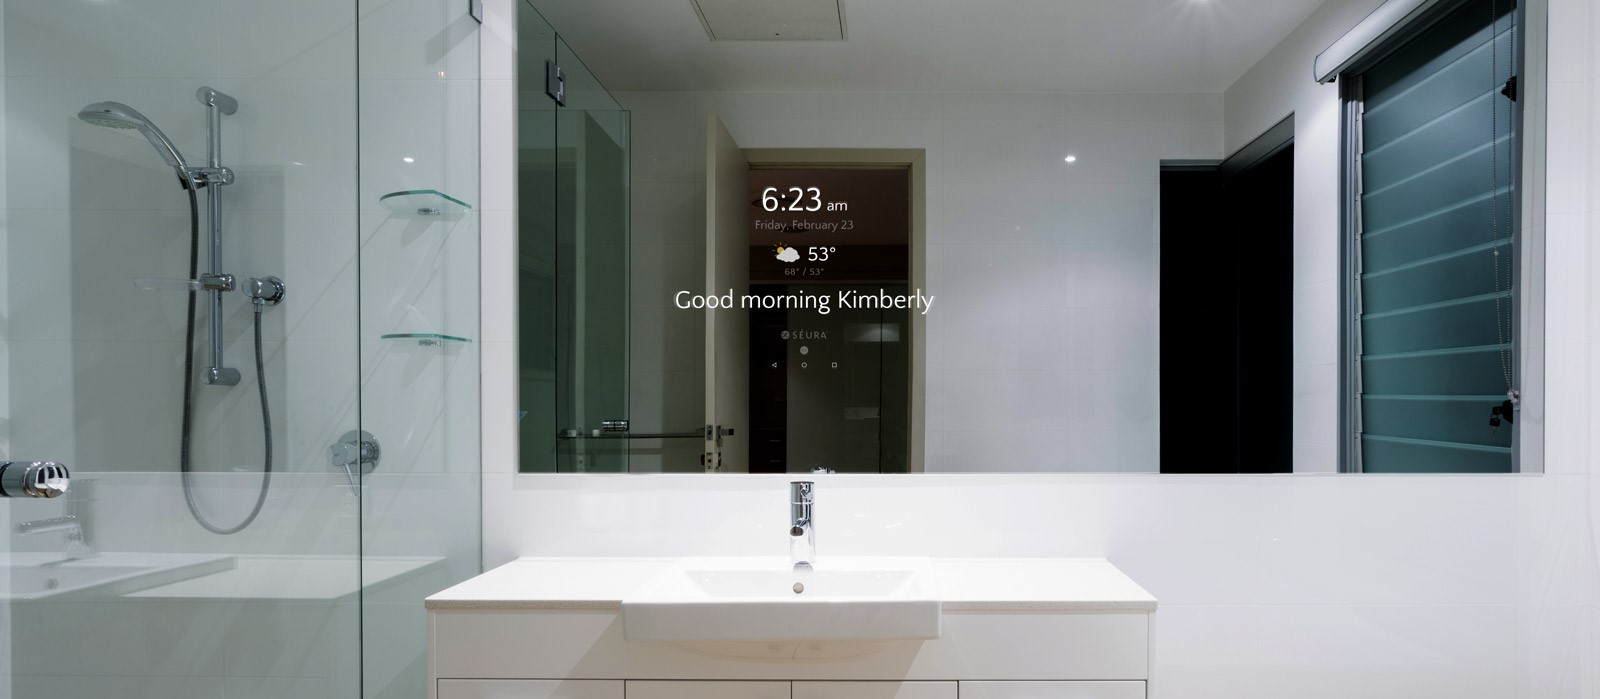 Why You Should Add a Séura Smart Mirror to Your Bathroom